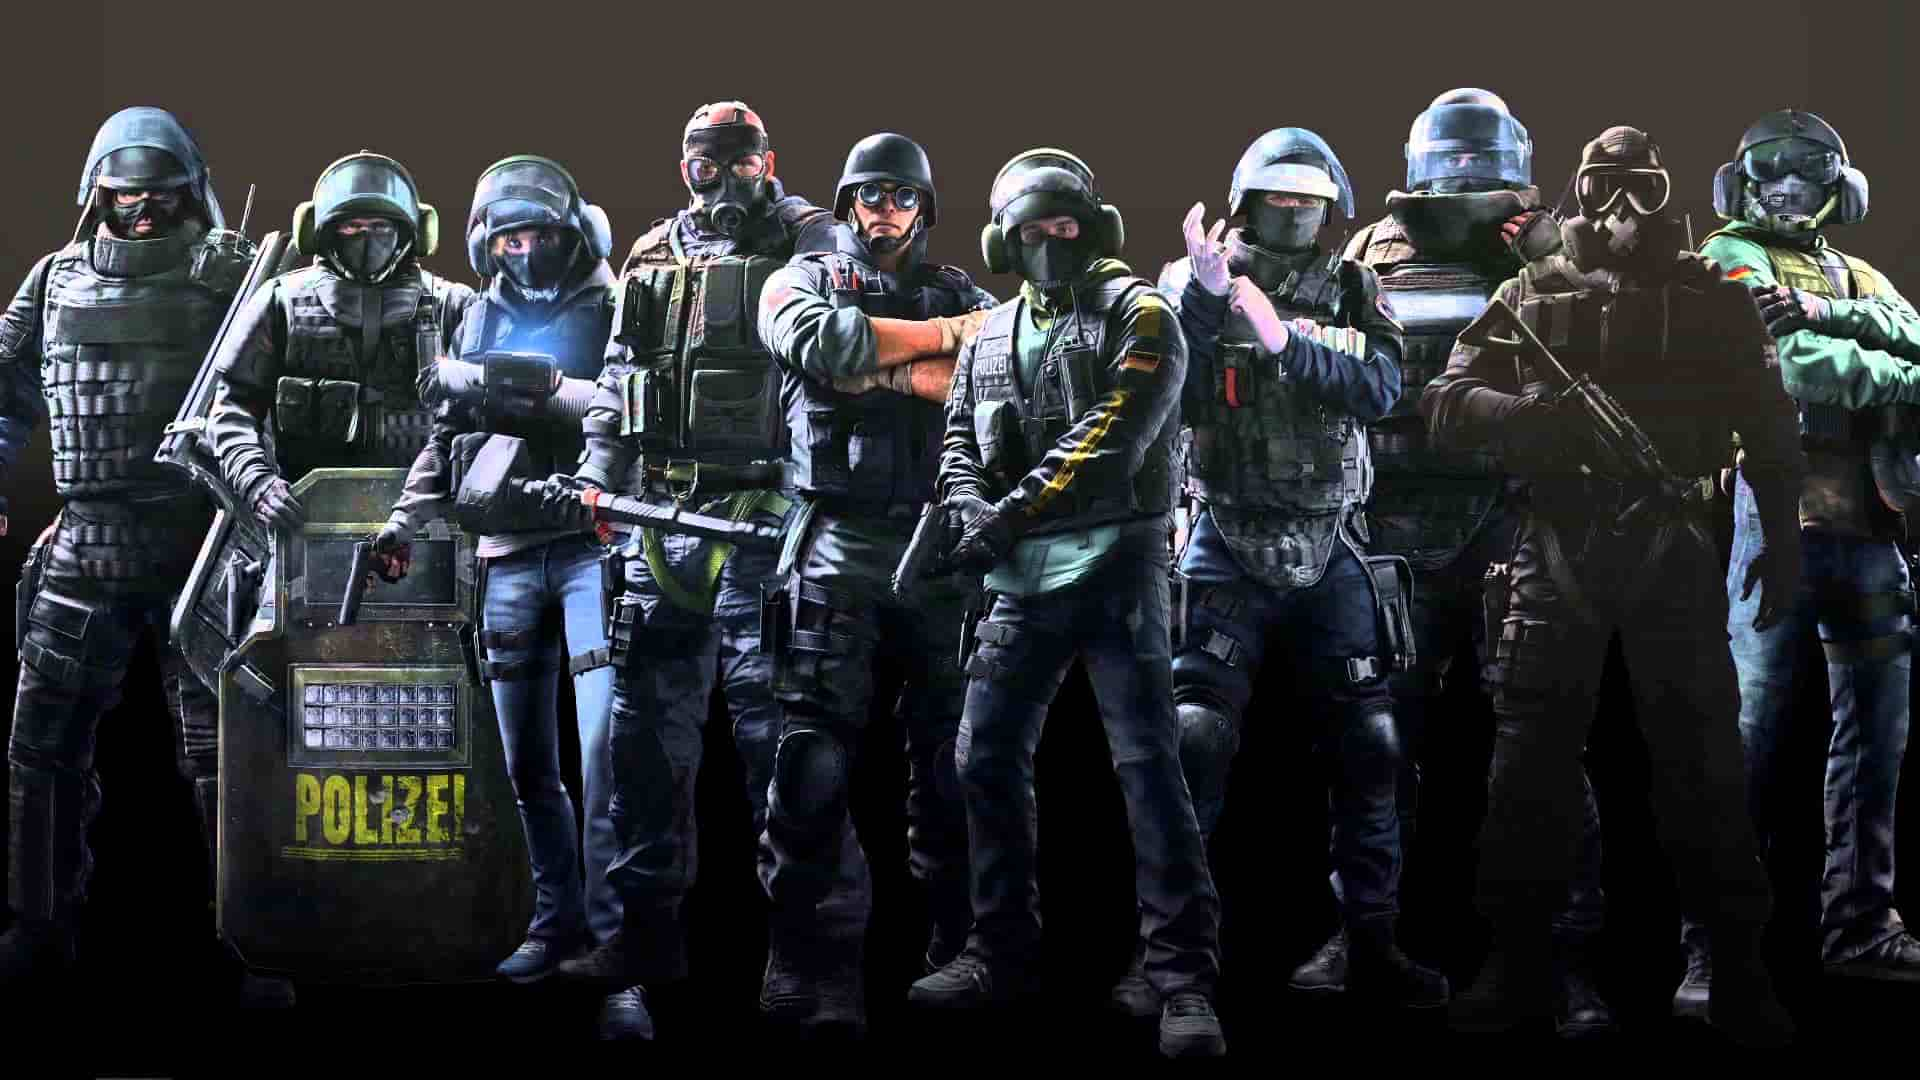 rainbow six siege battle royale